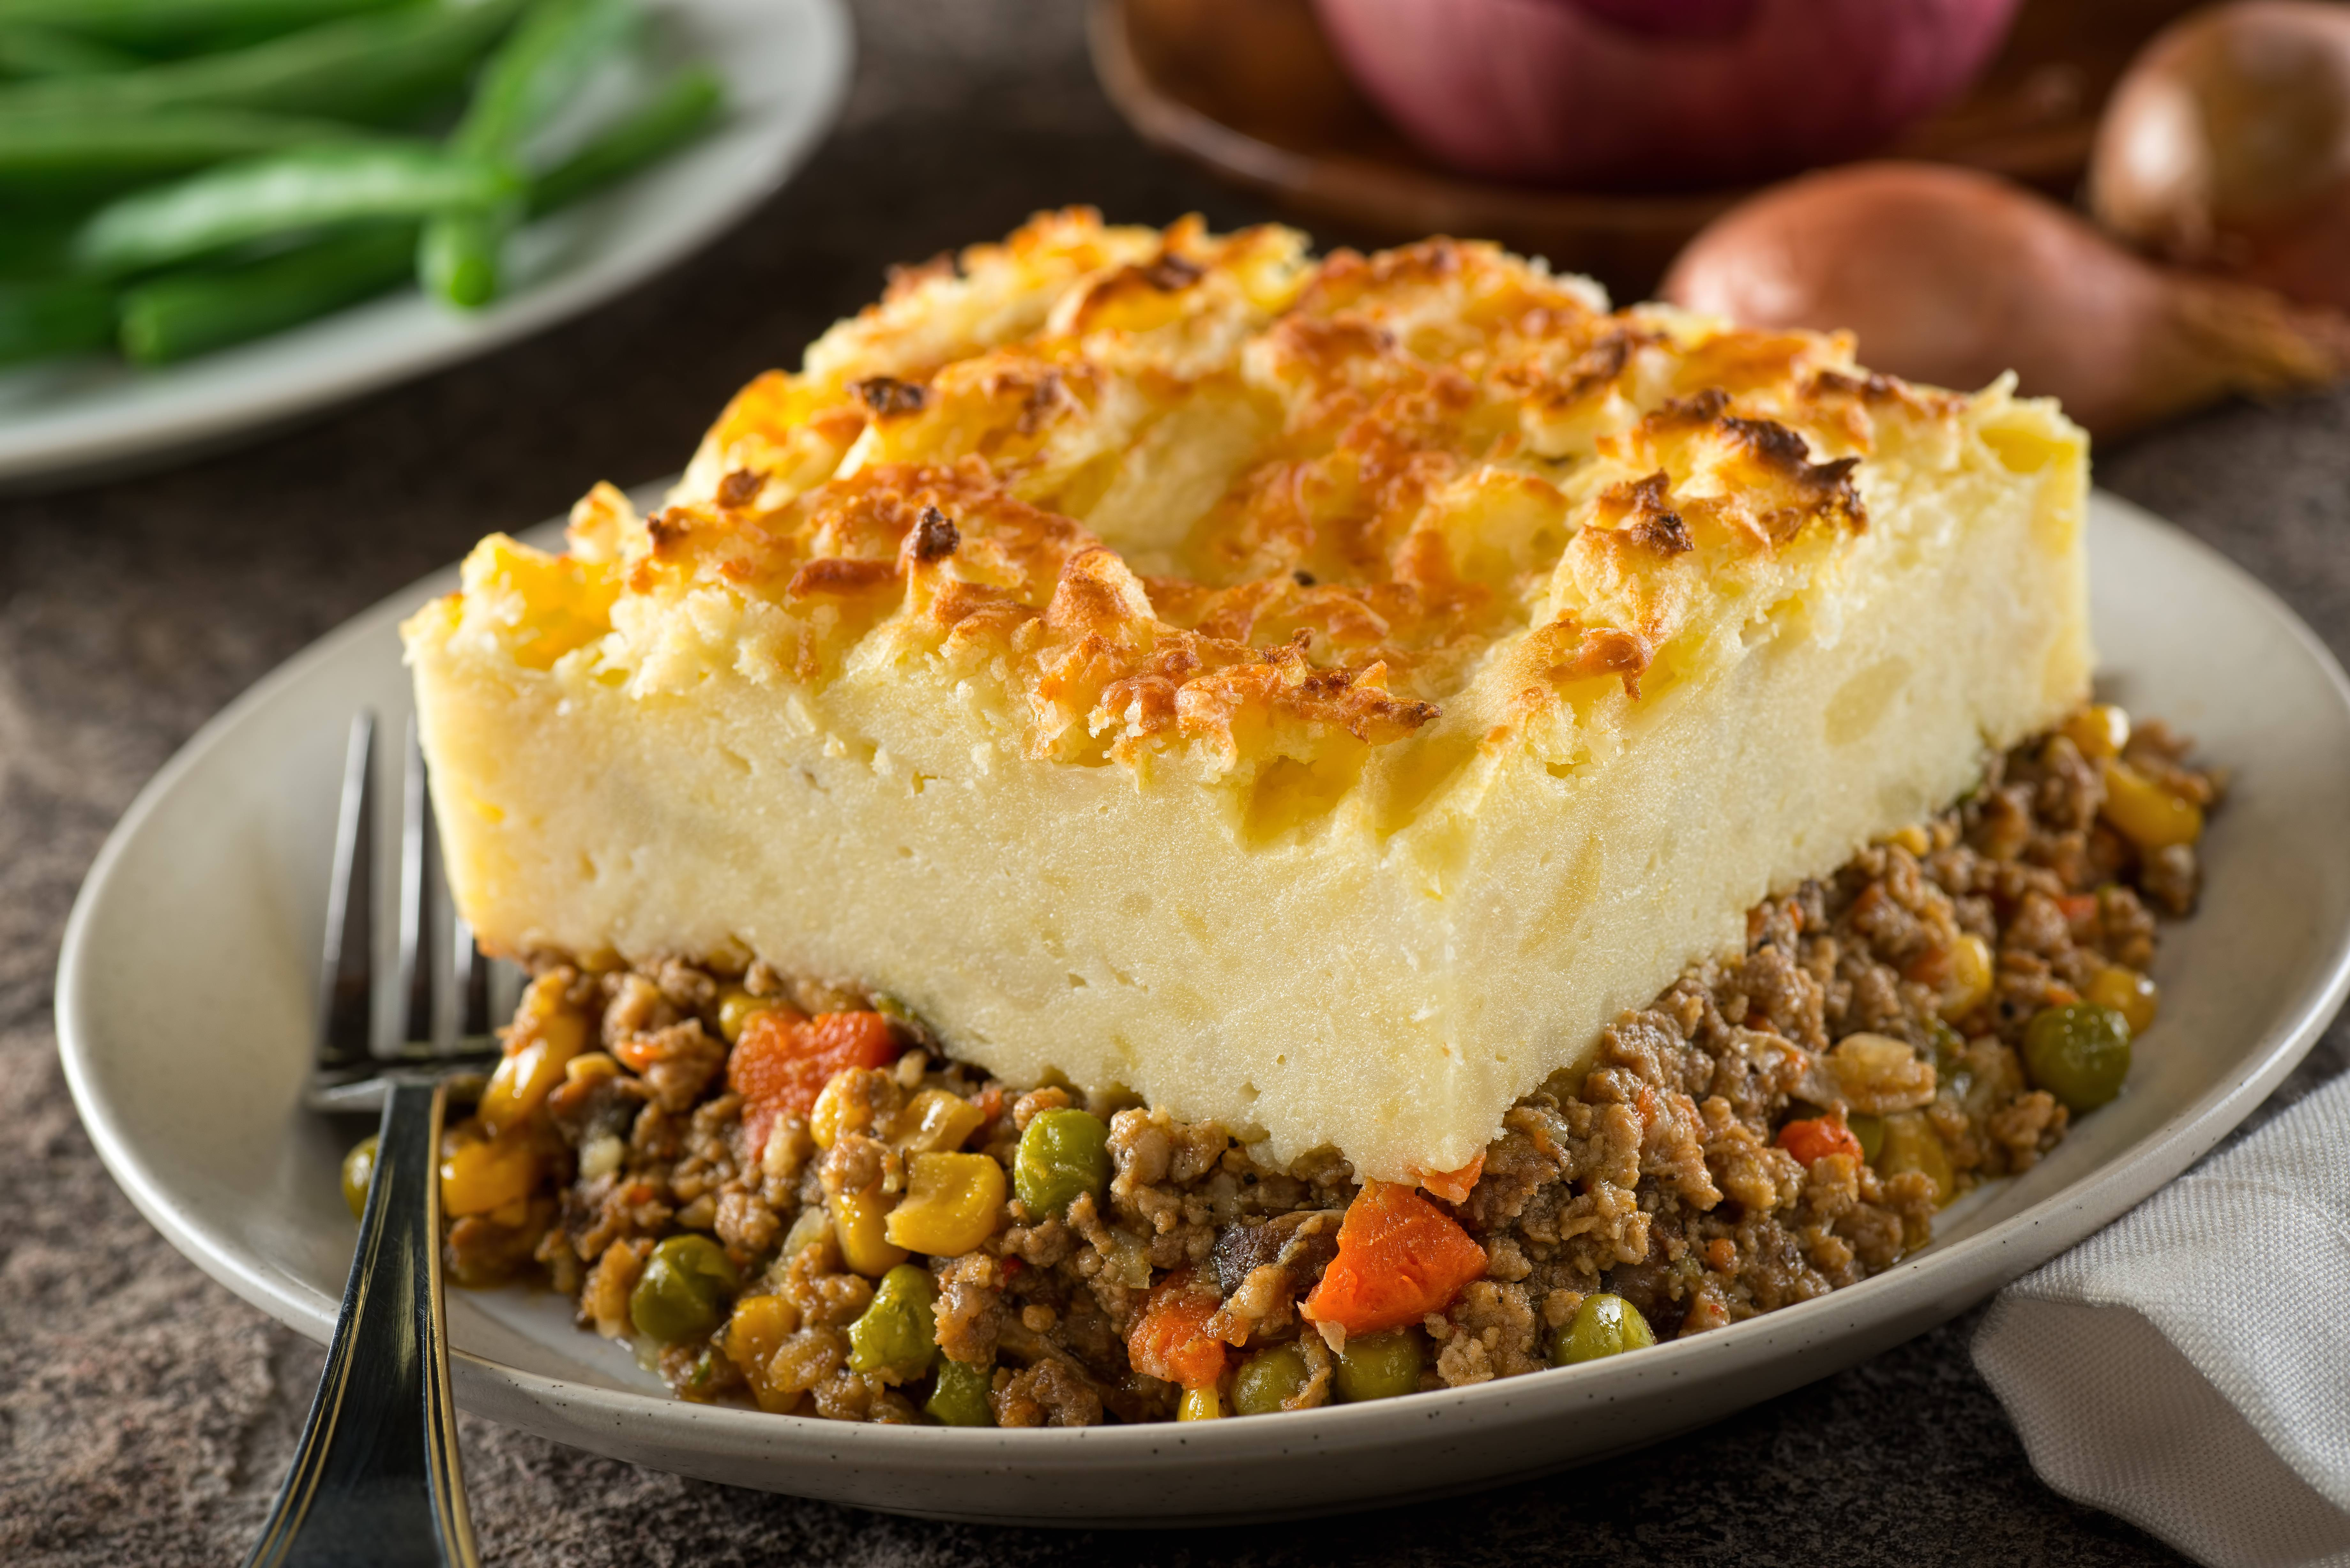 a slice of meat and potatoes Shepherd's pie on a plate with a fork